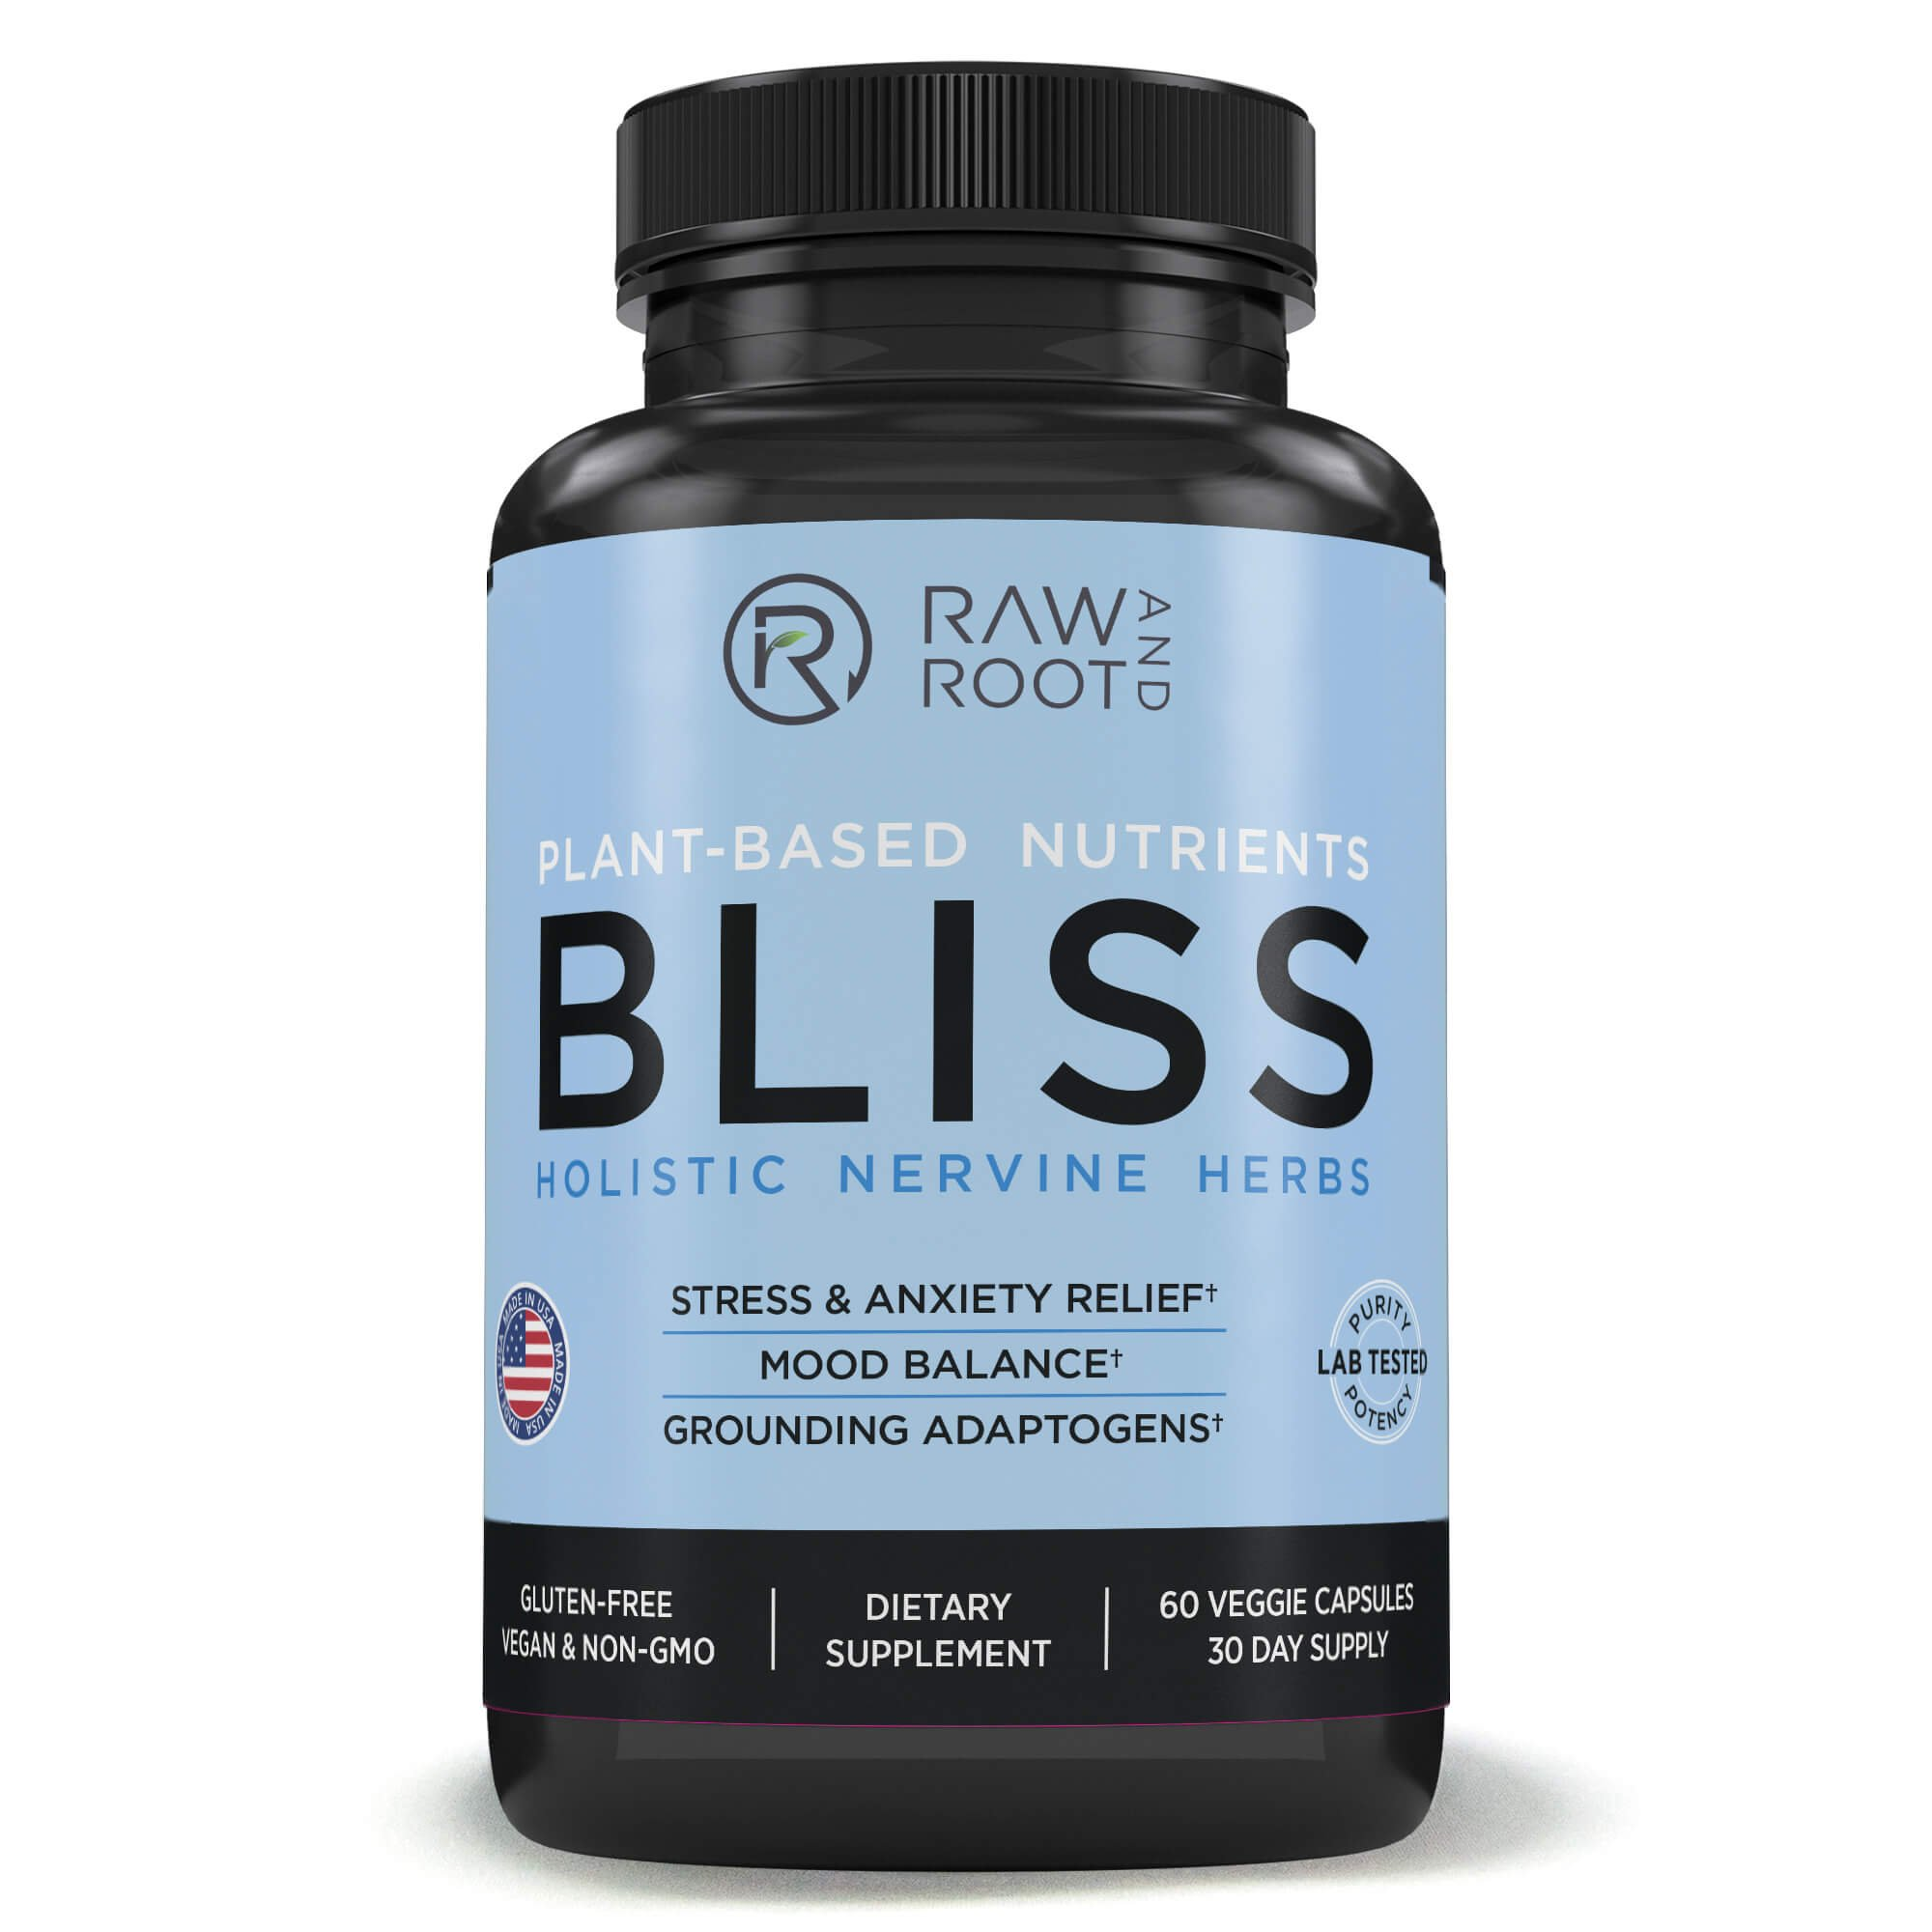 Bliss (Holistic Nervine Herbs) - Adaptogens Ashwagandha, Reishi, St. John's Wort and Other Herbs for Anxiety Relief, Stress Relief, Adrenal Support - Dietary Supplement - 60 Vegetarian Capsules